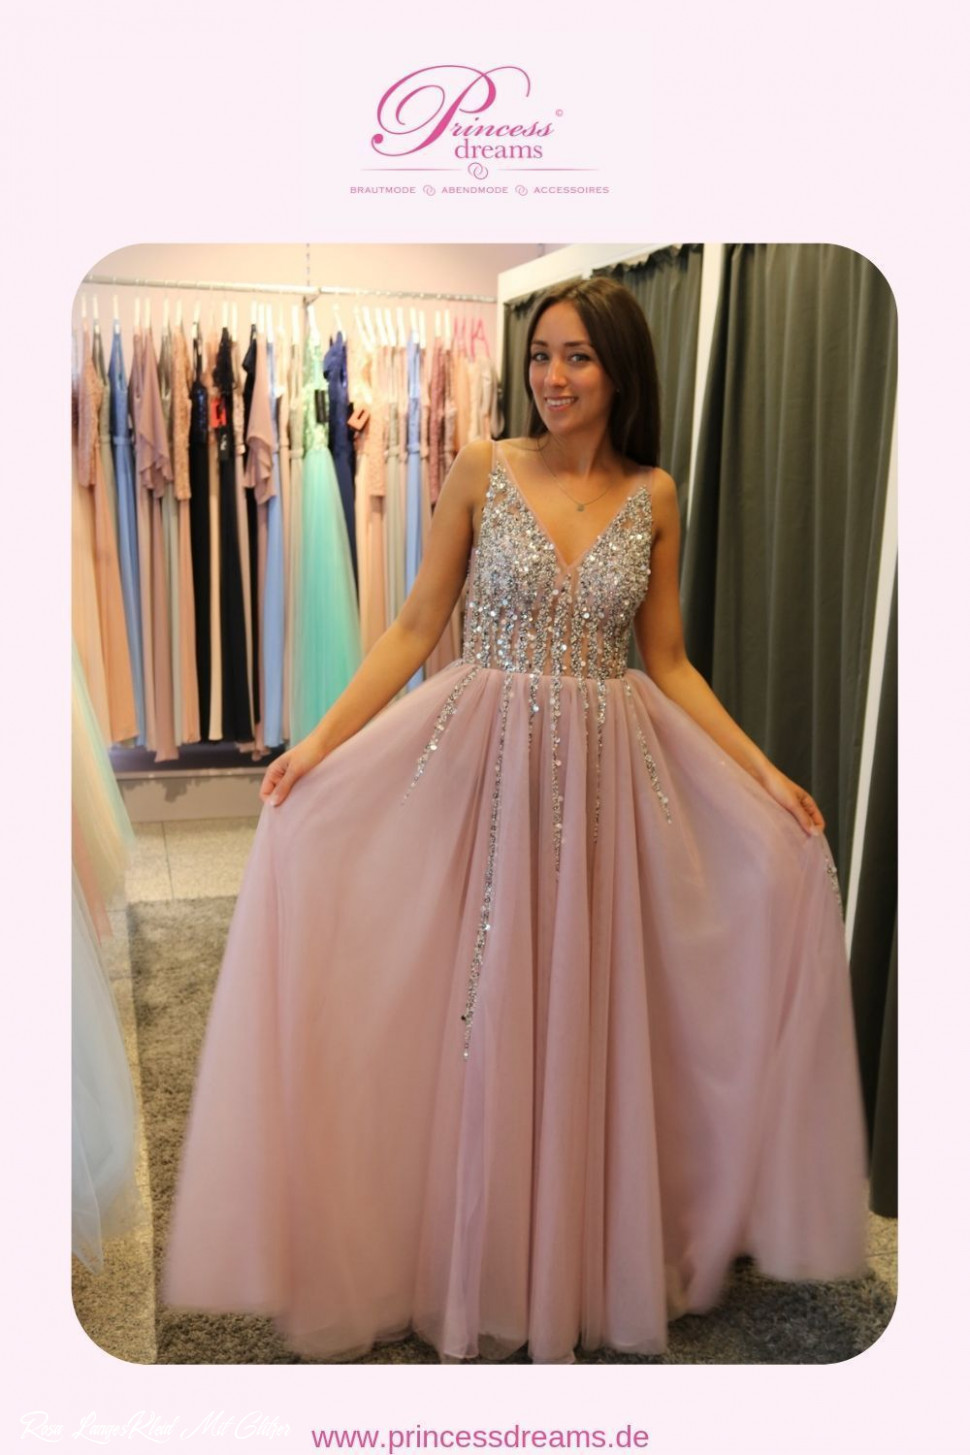 abiballkleid glitzer rosa bei princess dreams in berlin in 12